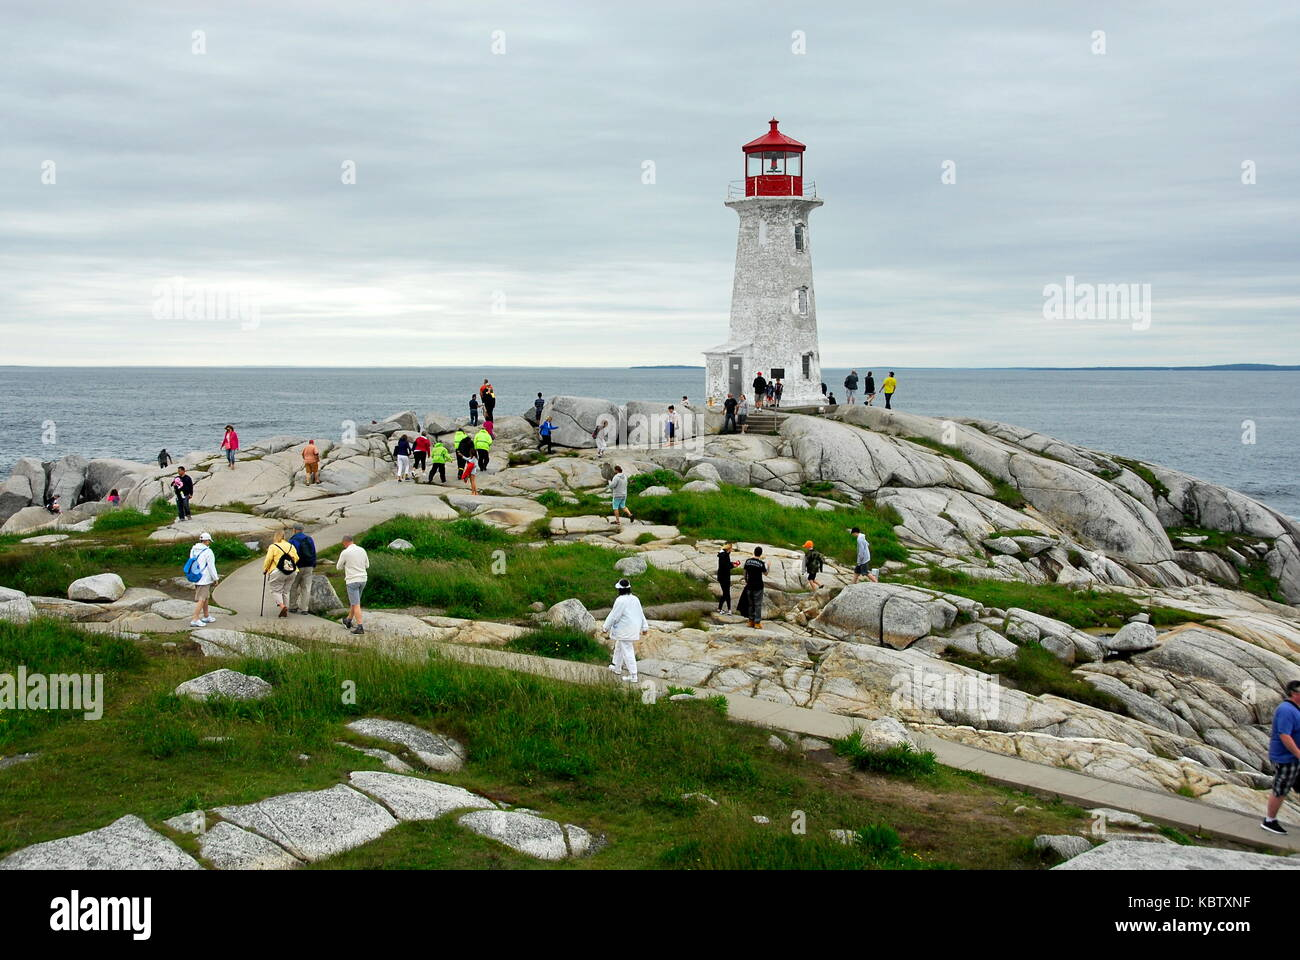 Peggy's Cove Lighthouse at Peggy's Cove on the eastern shore of St